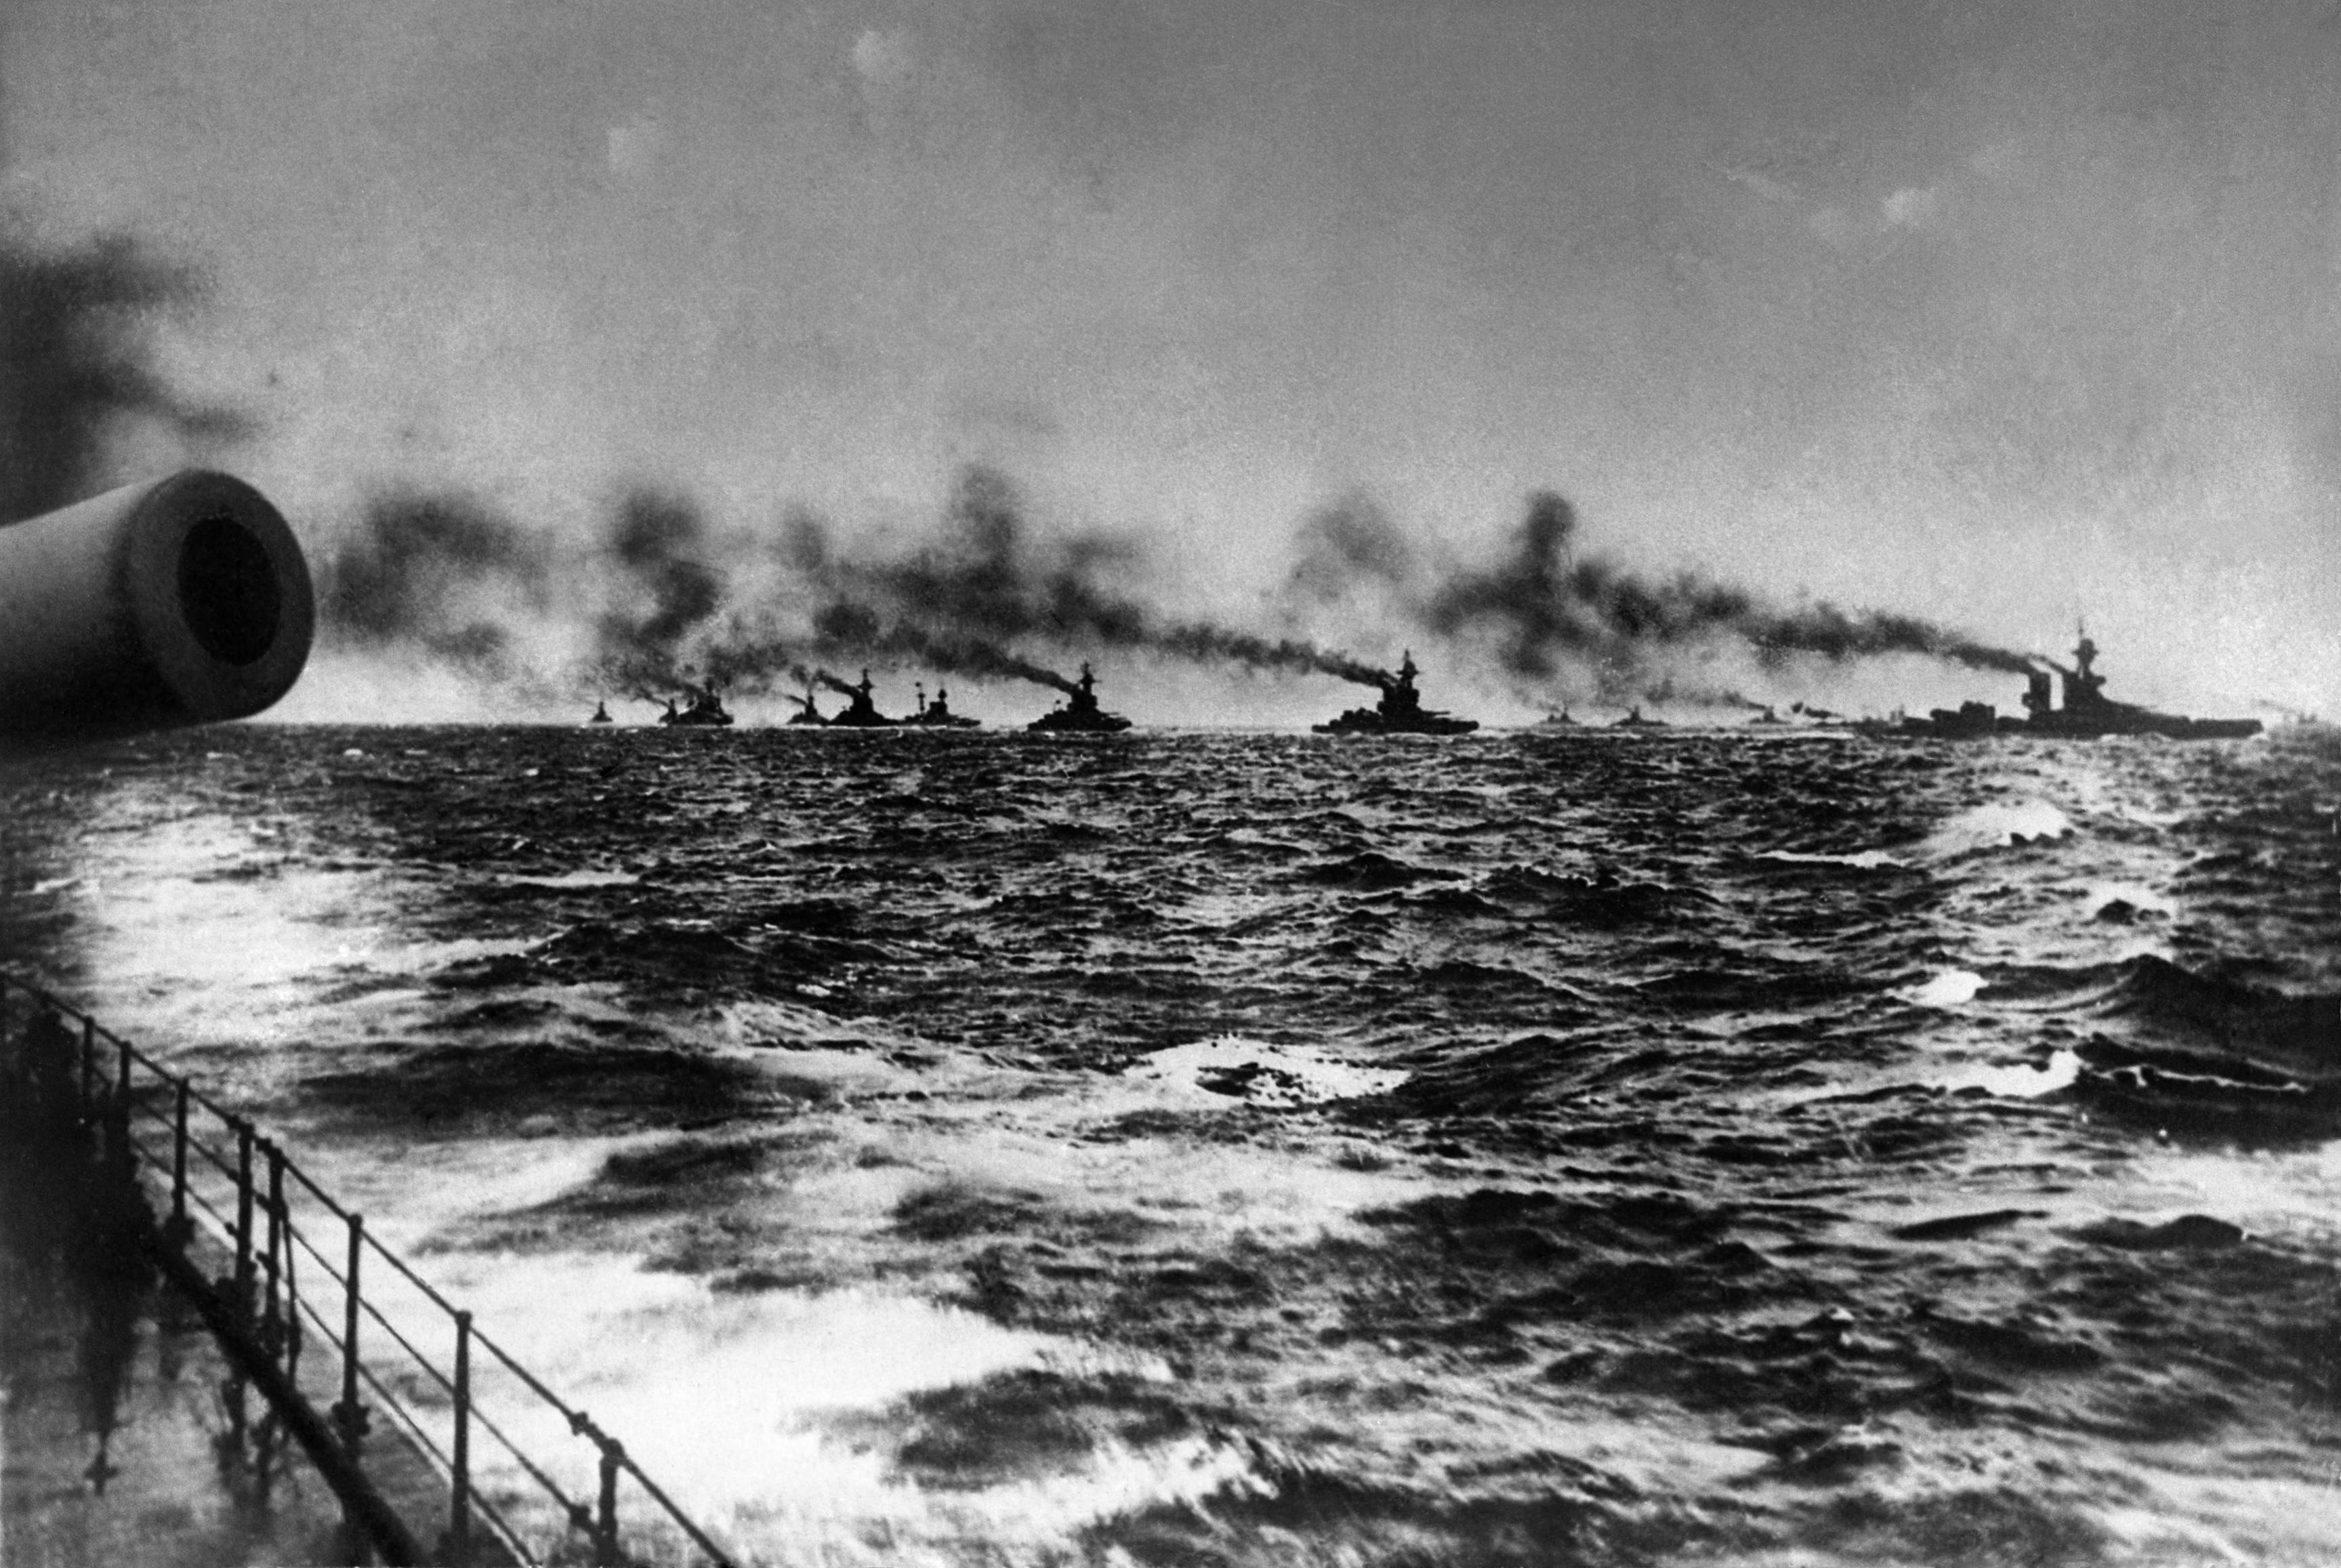 54 OF 100: In this May 31, 1916, file photo, the British Grand Fleet under Adm. John Jellicoe on their way to meet the Imperial German navy's fleet for the Battle of Jutland in the North Sea.